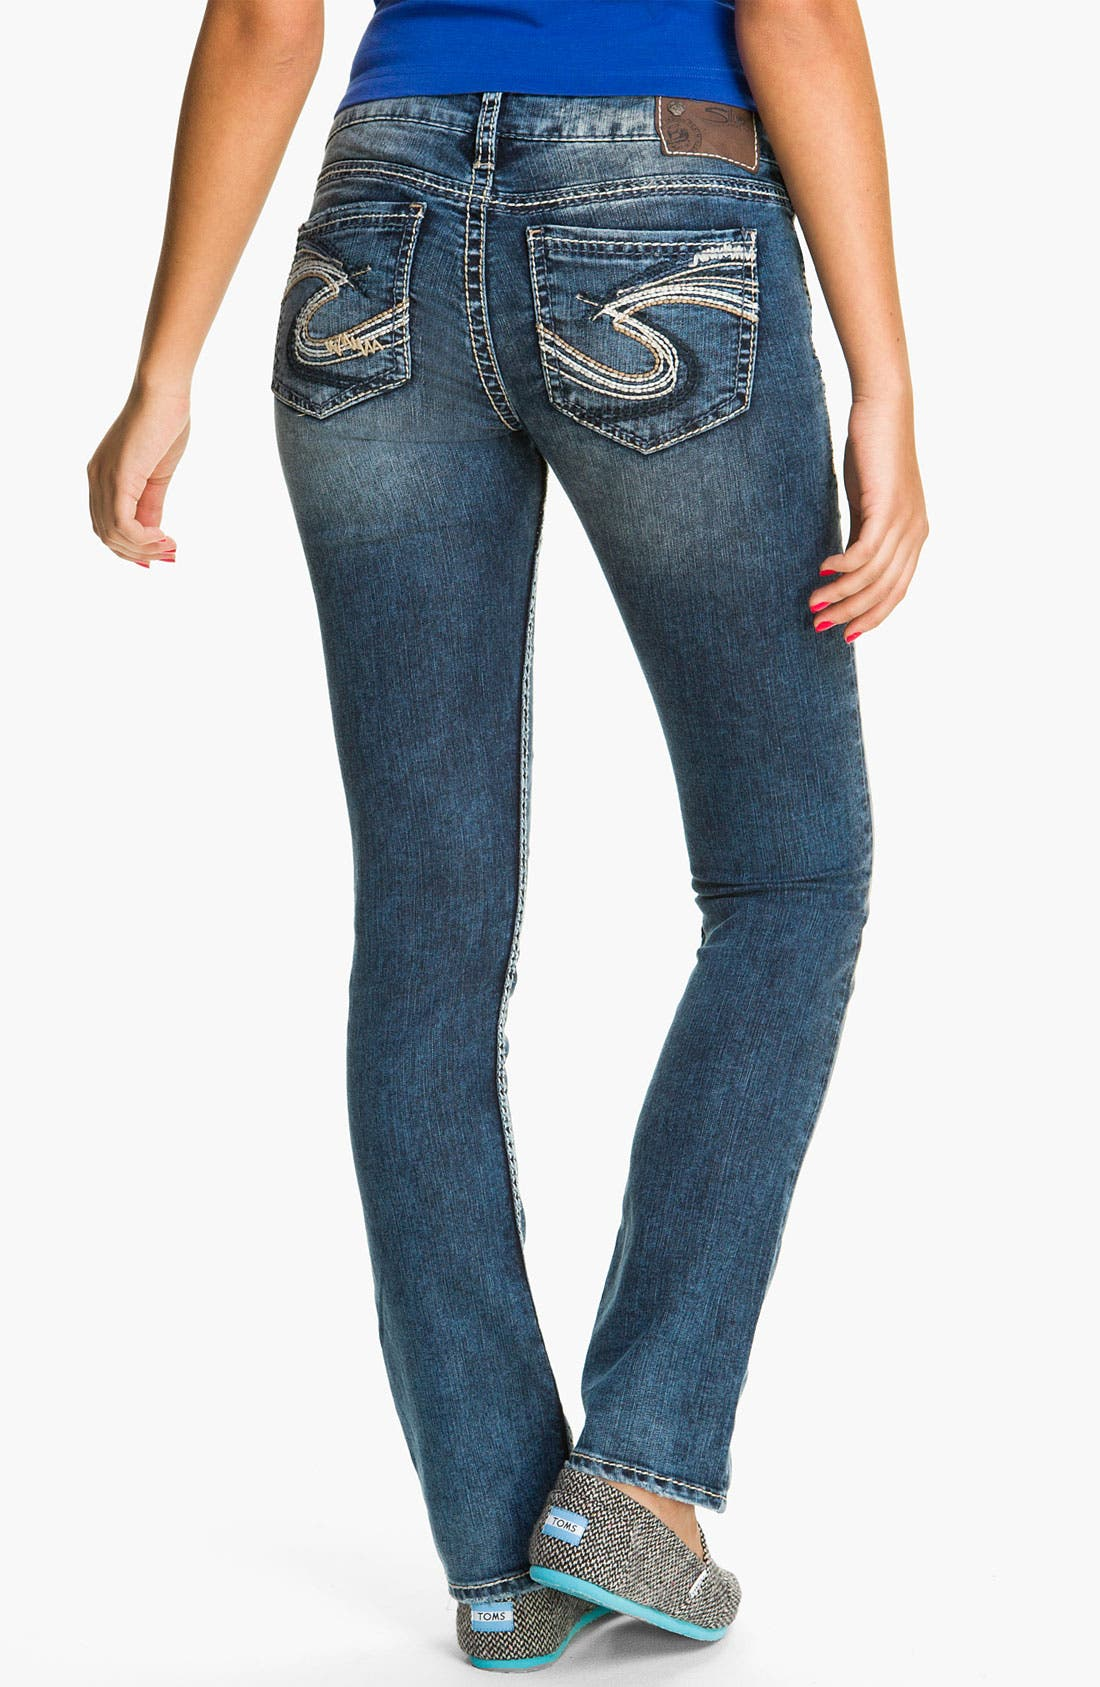 Main Image - Silver Jeans Co. 'Berkeley' Straight Leg Jeans (Juniors)